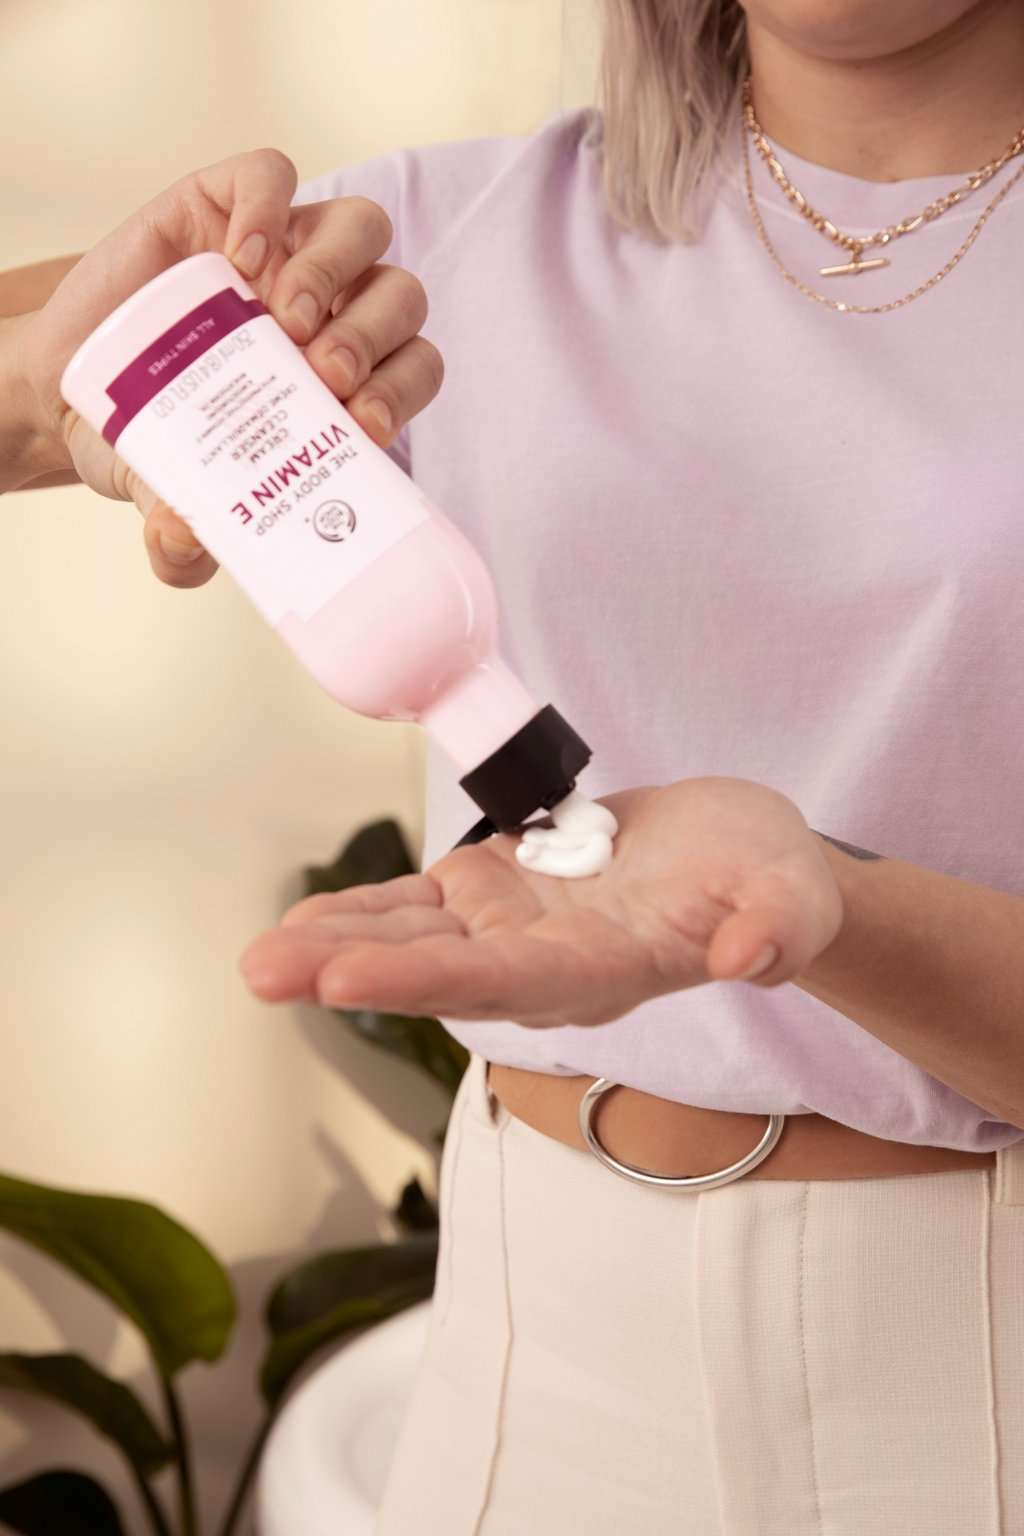 Woman  pouring cream cleanser from bottle